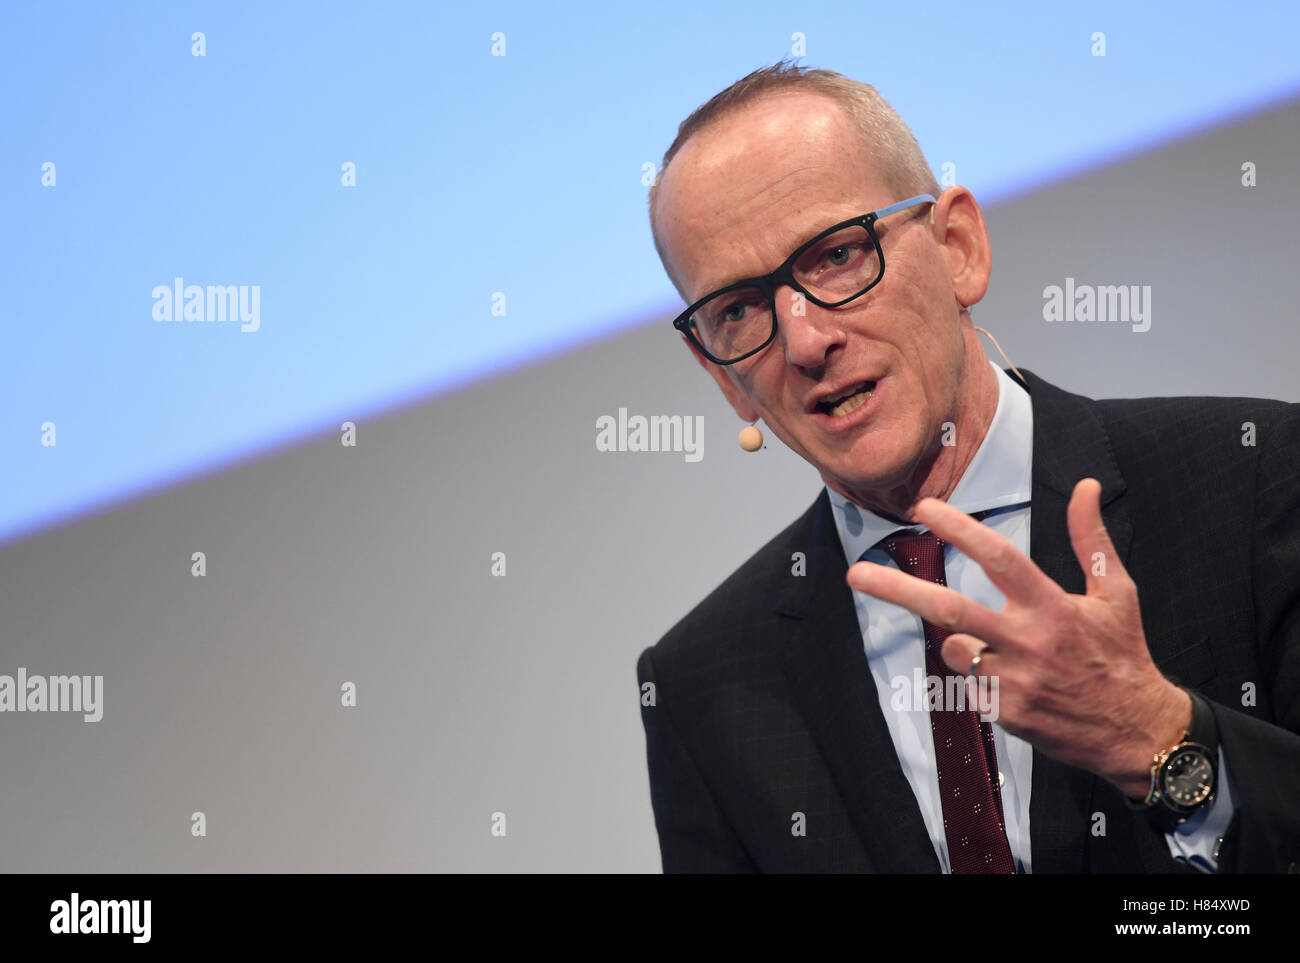 Munich, Germany. 9th Nov, 2016. Karl-Thomas Neumann, head of the directors of the Opel Group speaks at the 'car - Stock Image